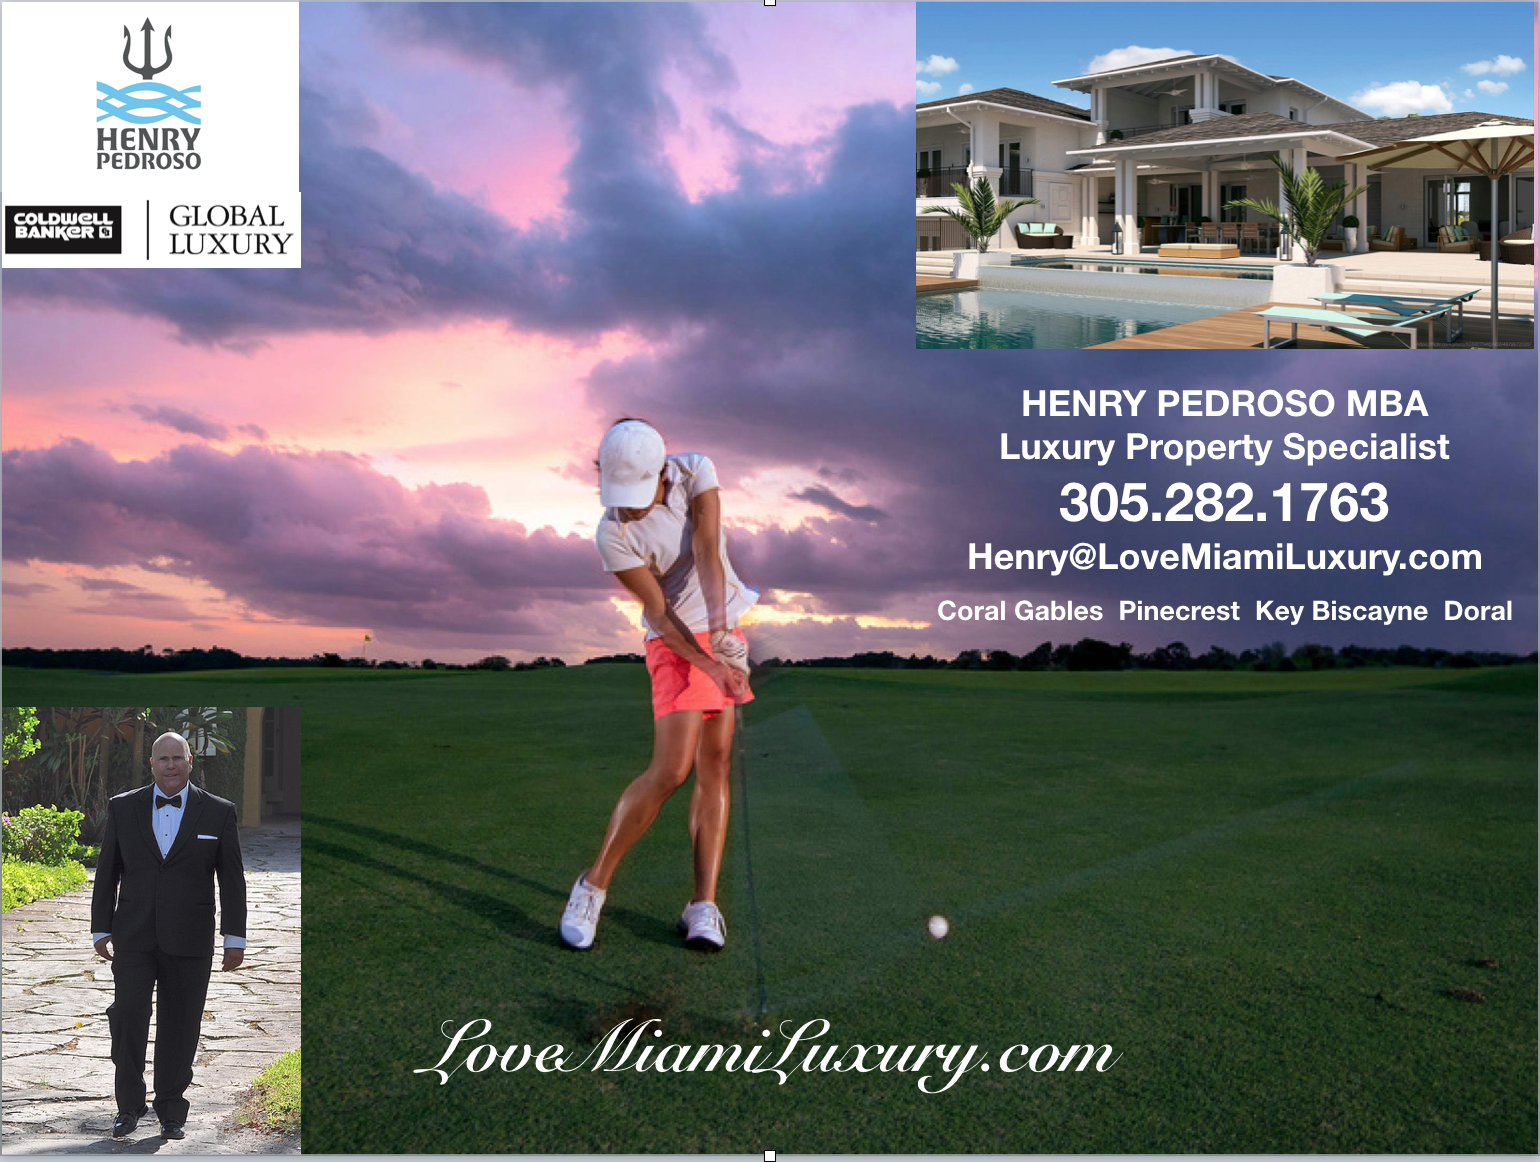 Miami Real Estate - Live the Magic!